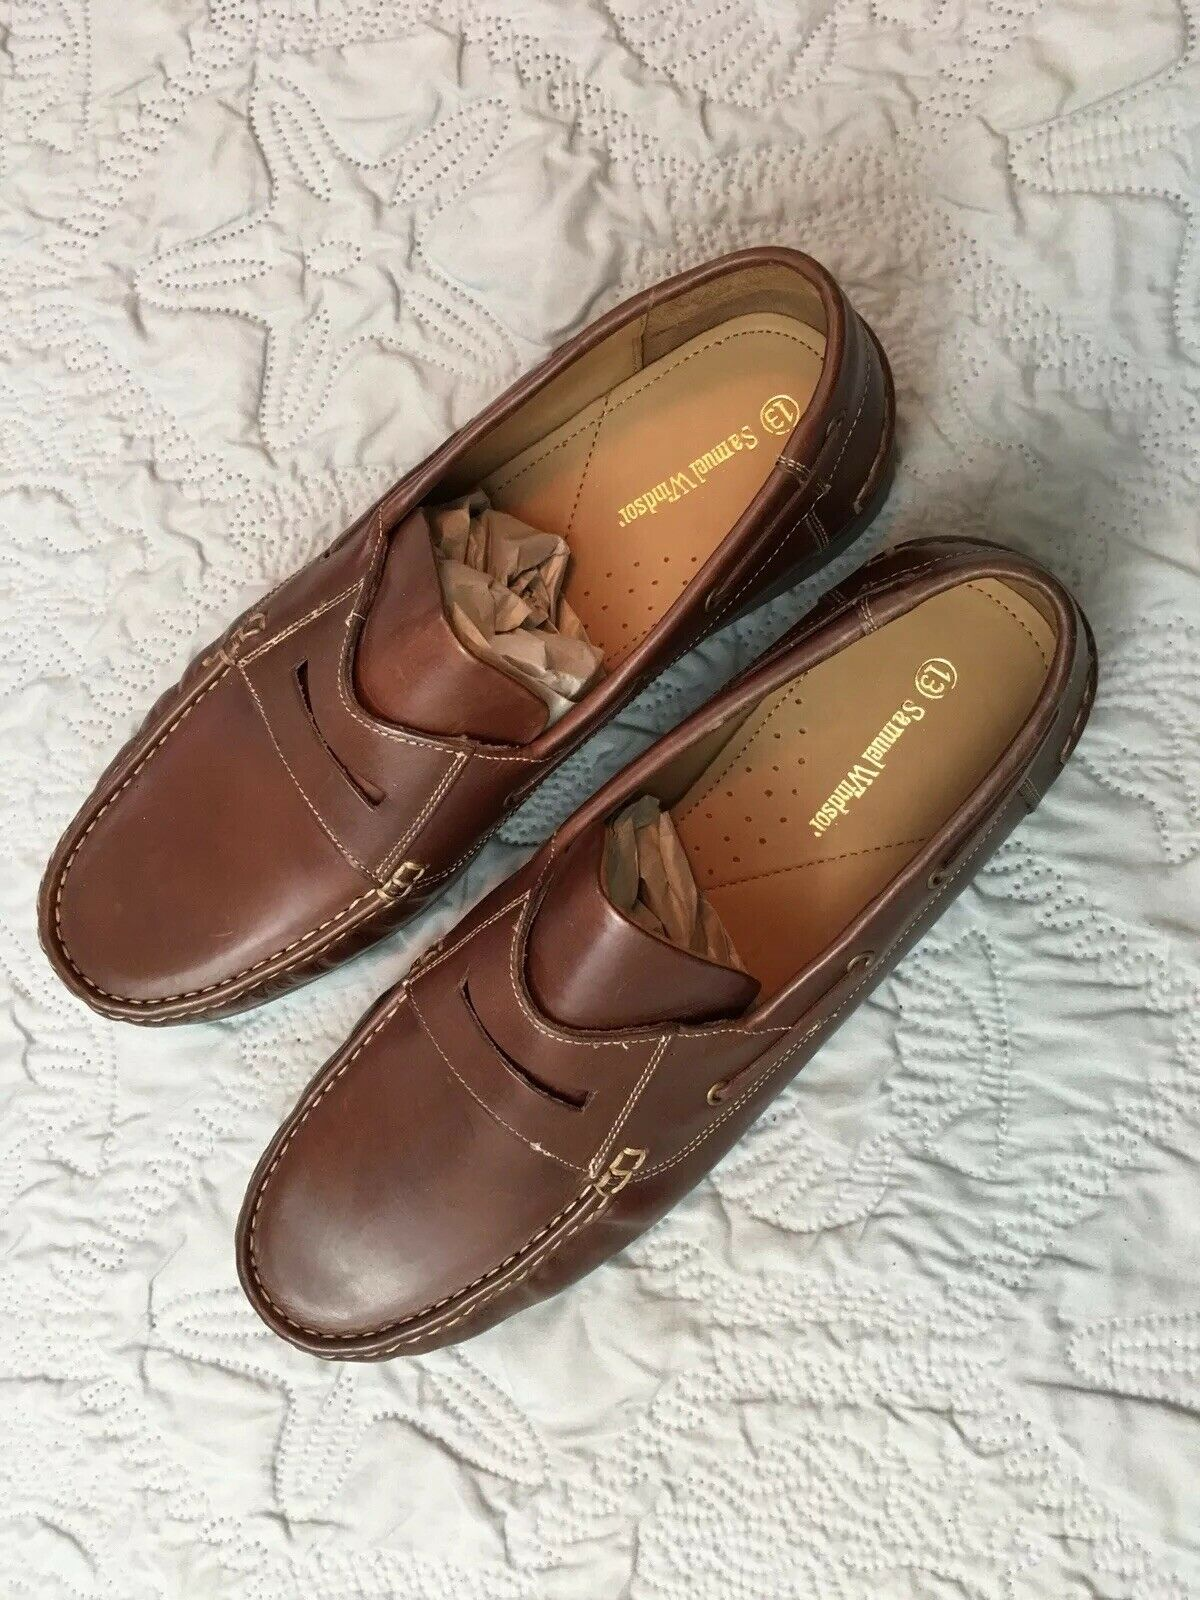 Samuel Windsor Classic Penny Loafer shoes US Size 13 Mens Brown Leather